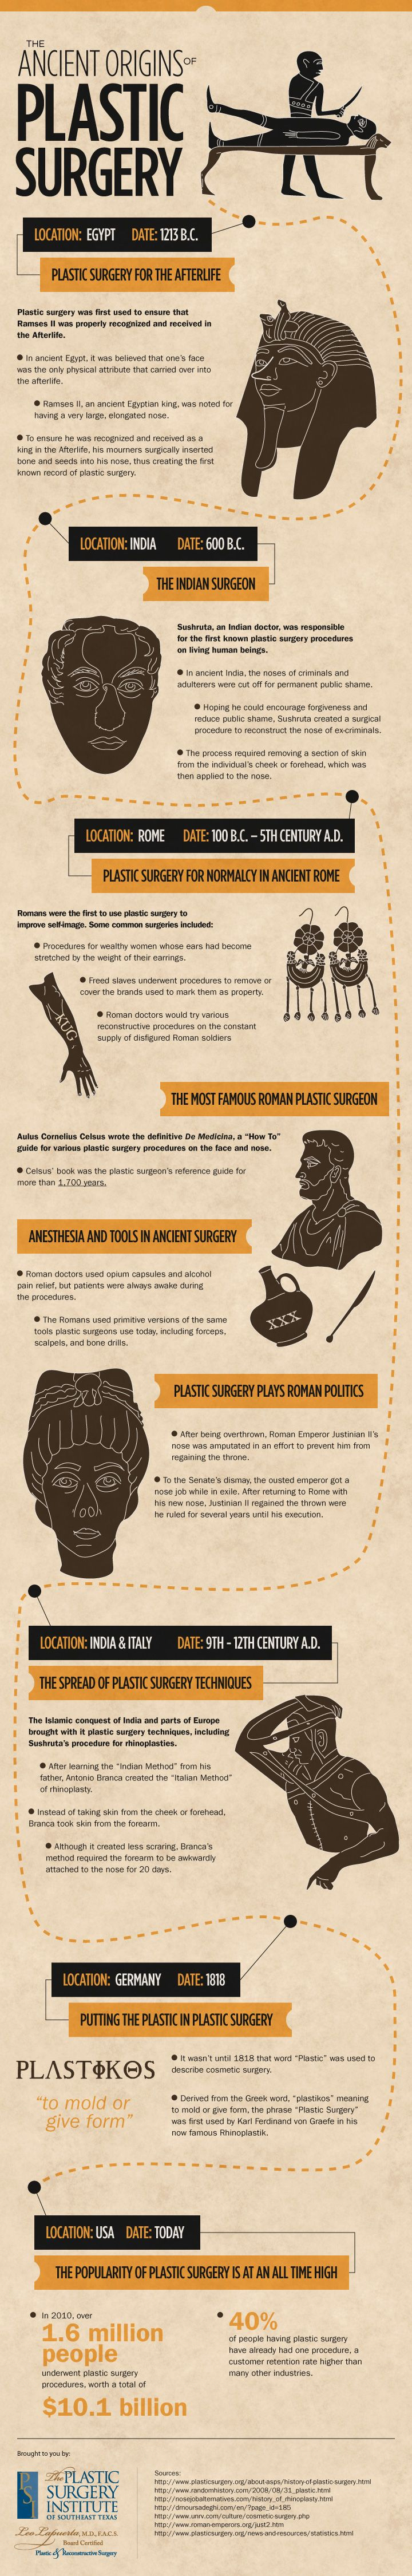 The ancient origins of plastic surgery #infographic